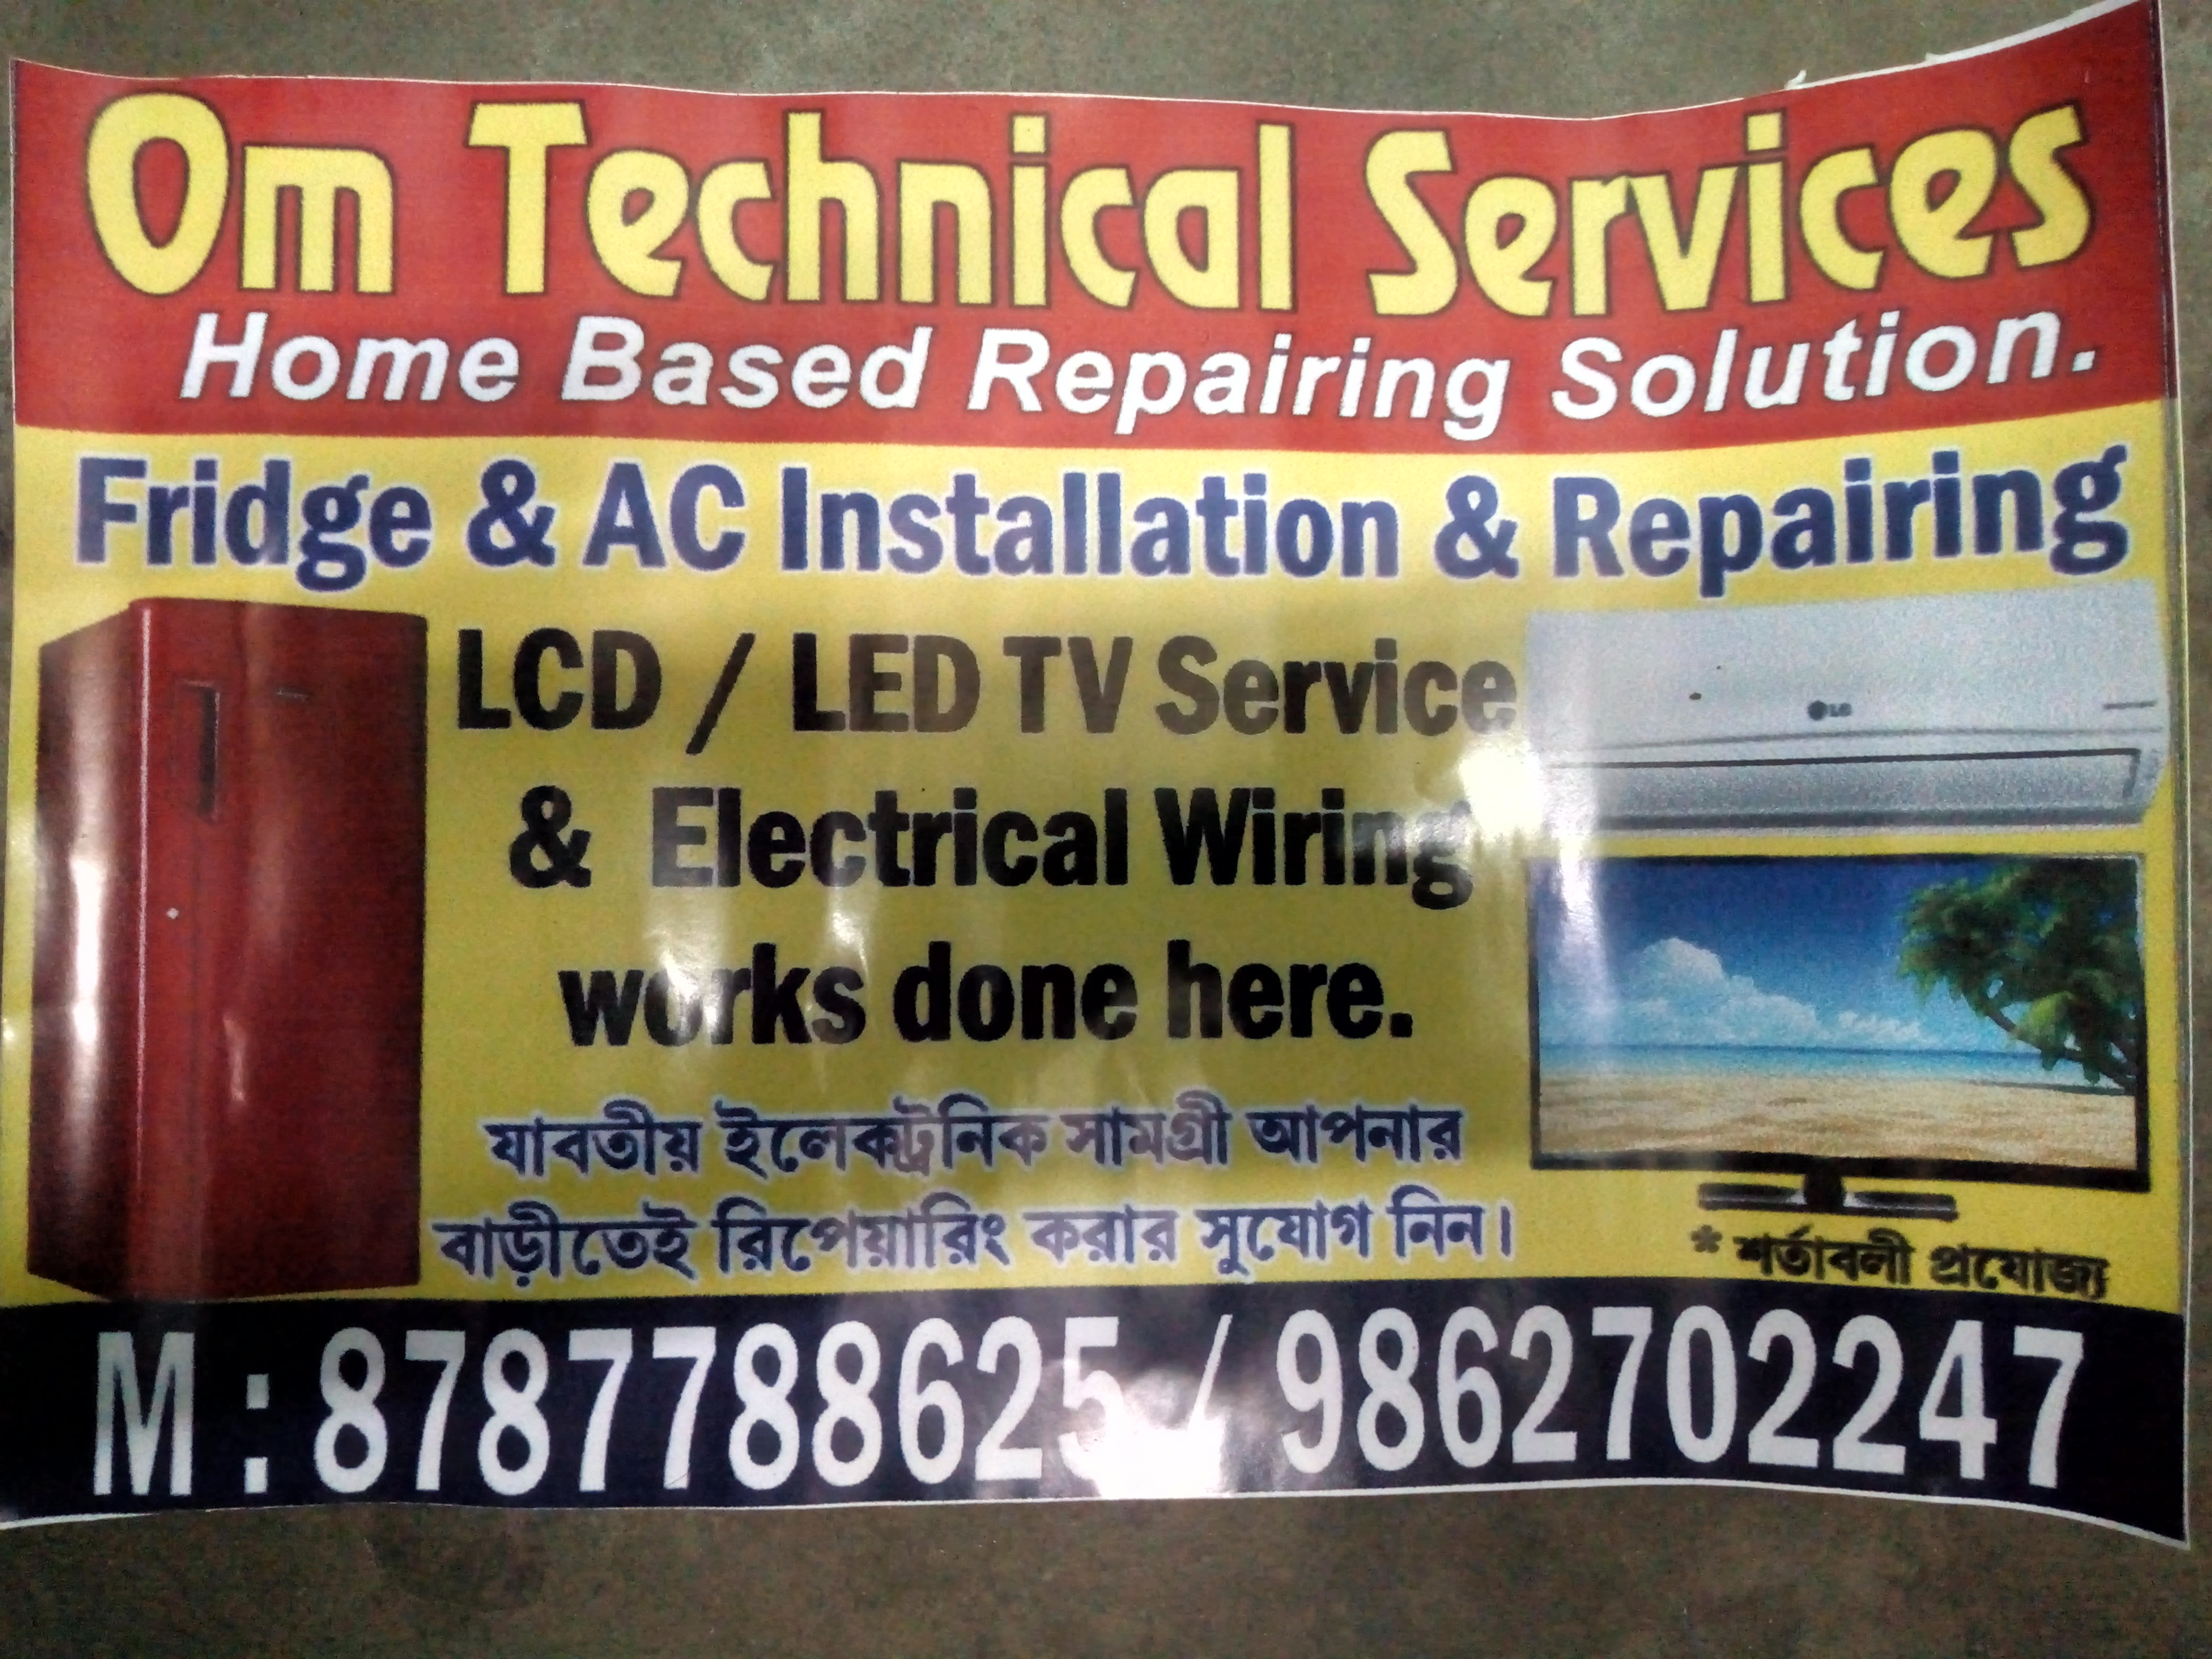 Om Technical Services